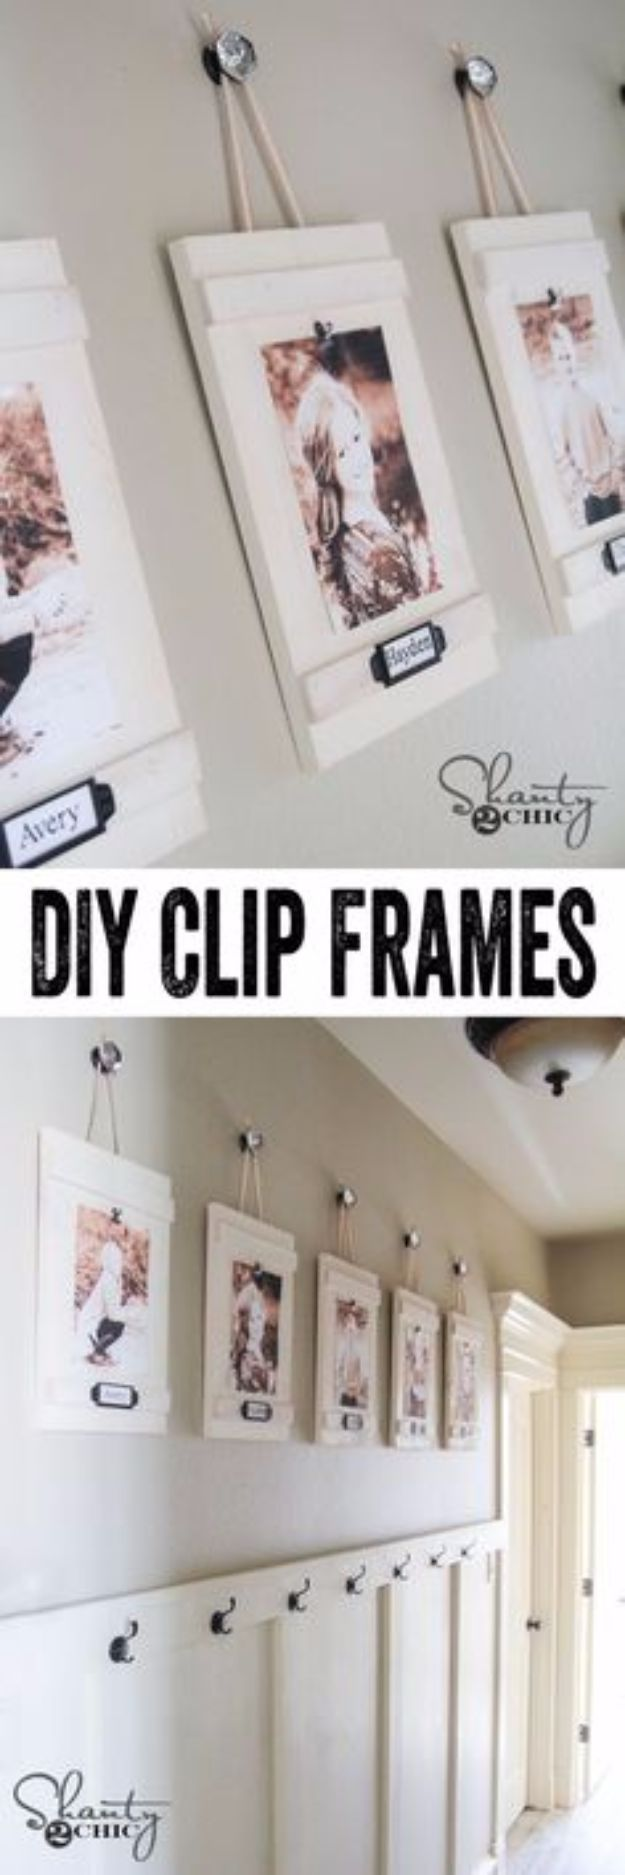 30 MUST KNOW Tips and Tricks for Hanging Photos and Frames